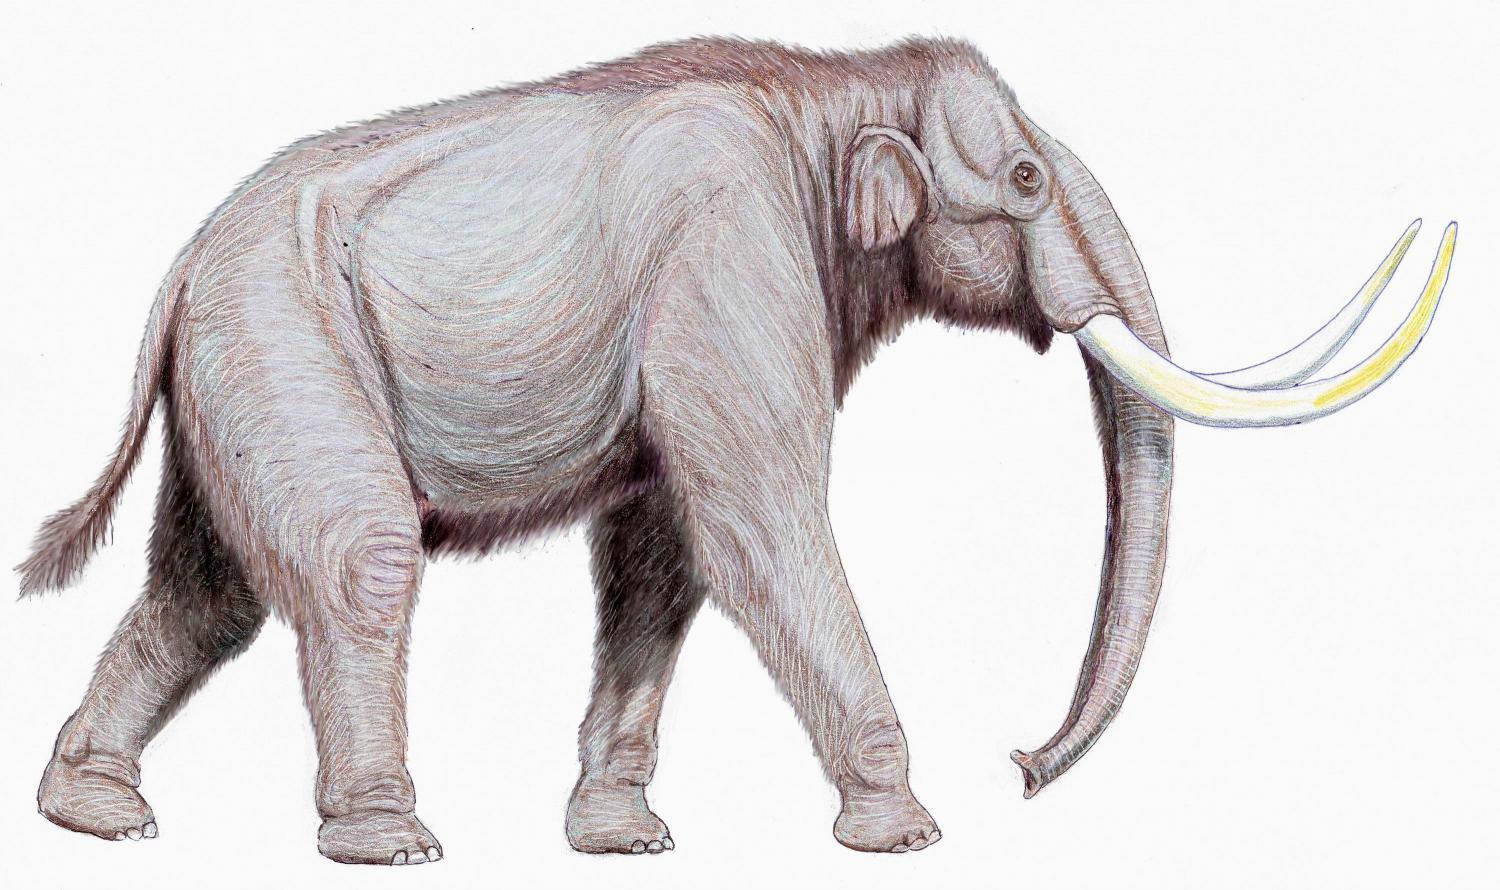 Closer look at teeth suggests Columbian mammoth was ...